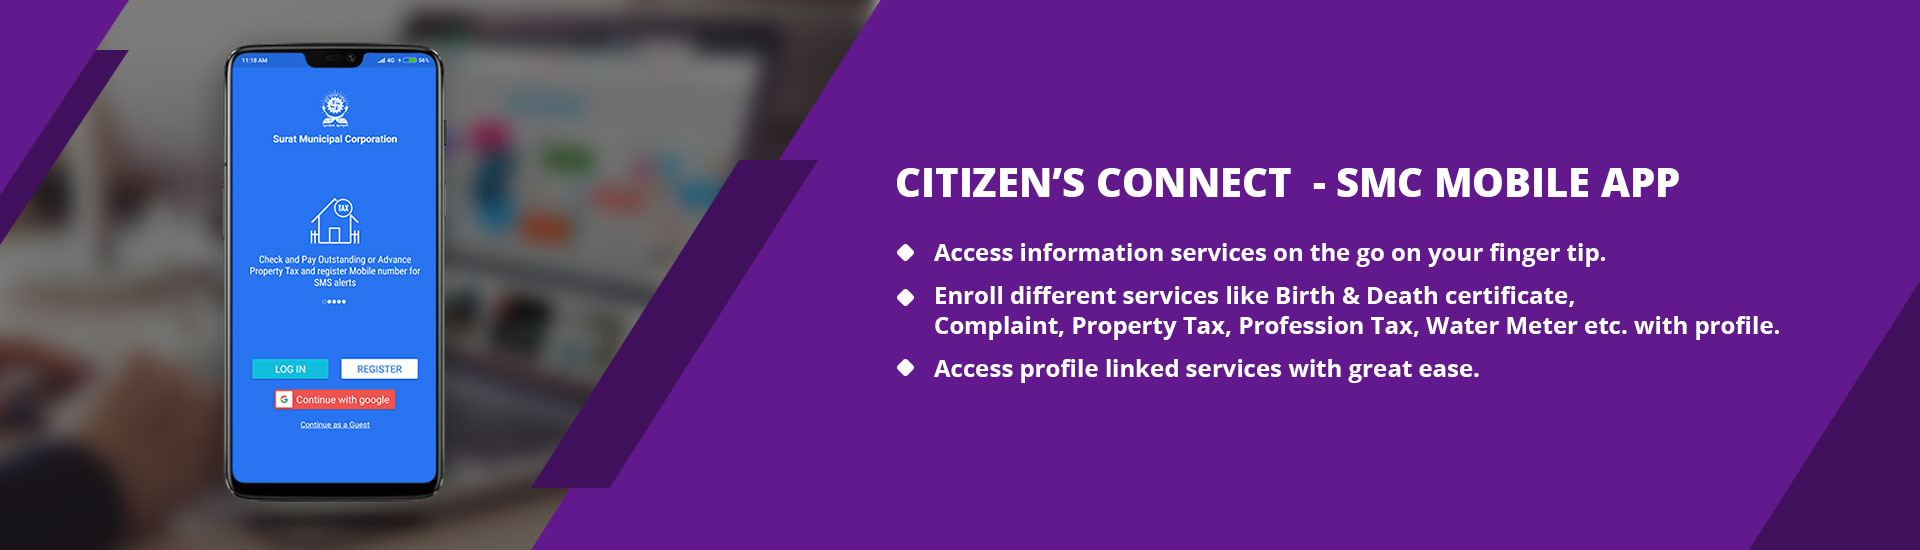 Citizen's Connect- Profile based SMC Mobile App